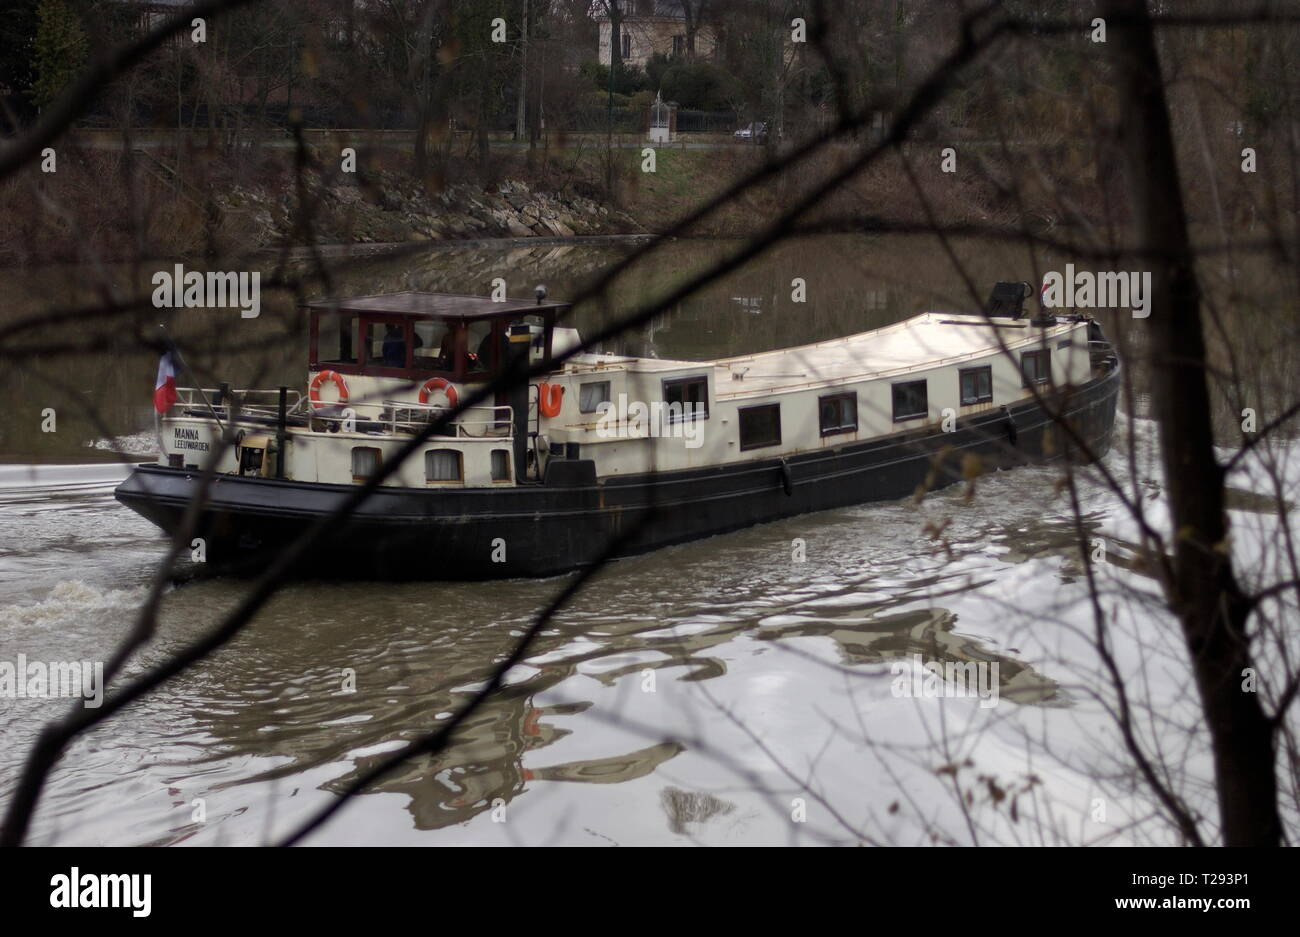 AJAXNETPHOTO. BOUGIVAL, FRANCE - INLAND WATERWAYS - OLD TIMER - A PENICHE ON ITS WAY UPSTREAM ON THE SEINE HEADING TOWARD PARIS. PHOTO:JONATHAN EASTLAND/AJAX REF:DX0601_3150 - Stock Image